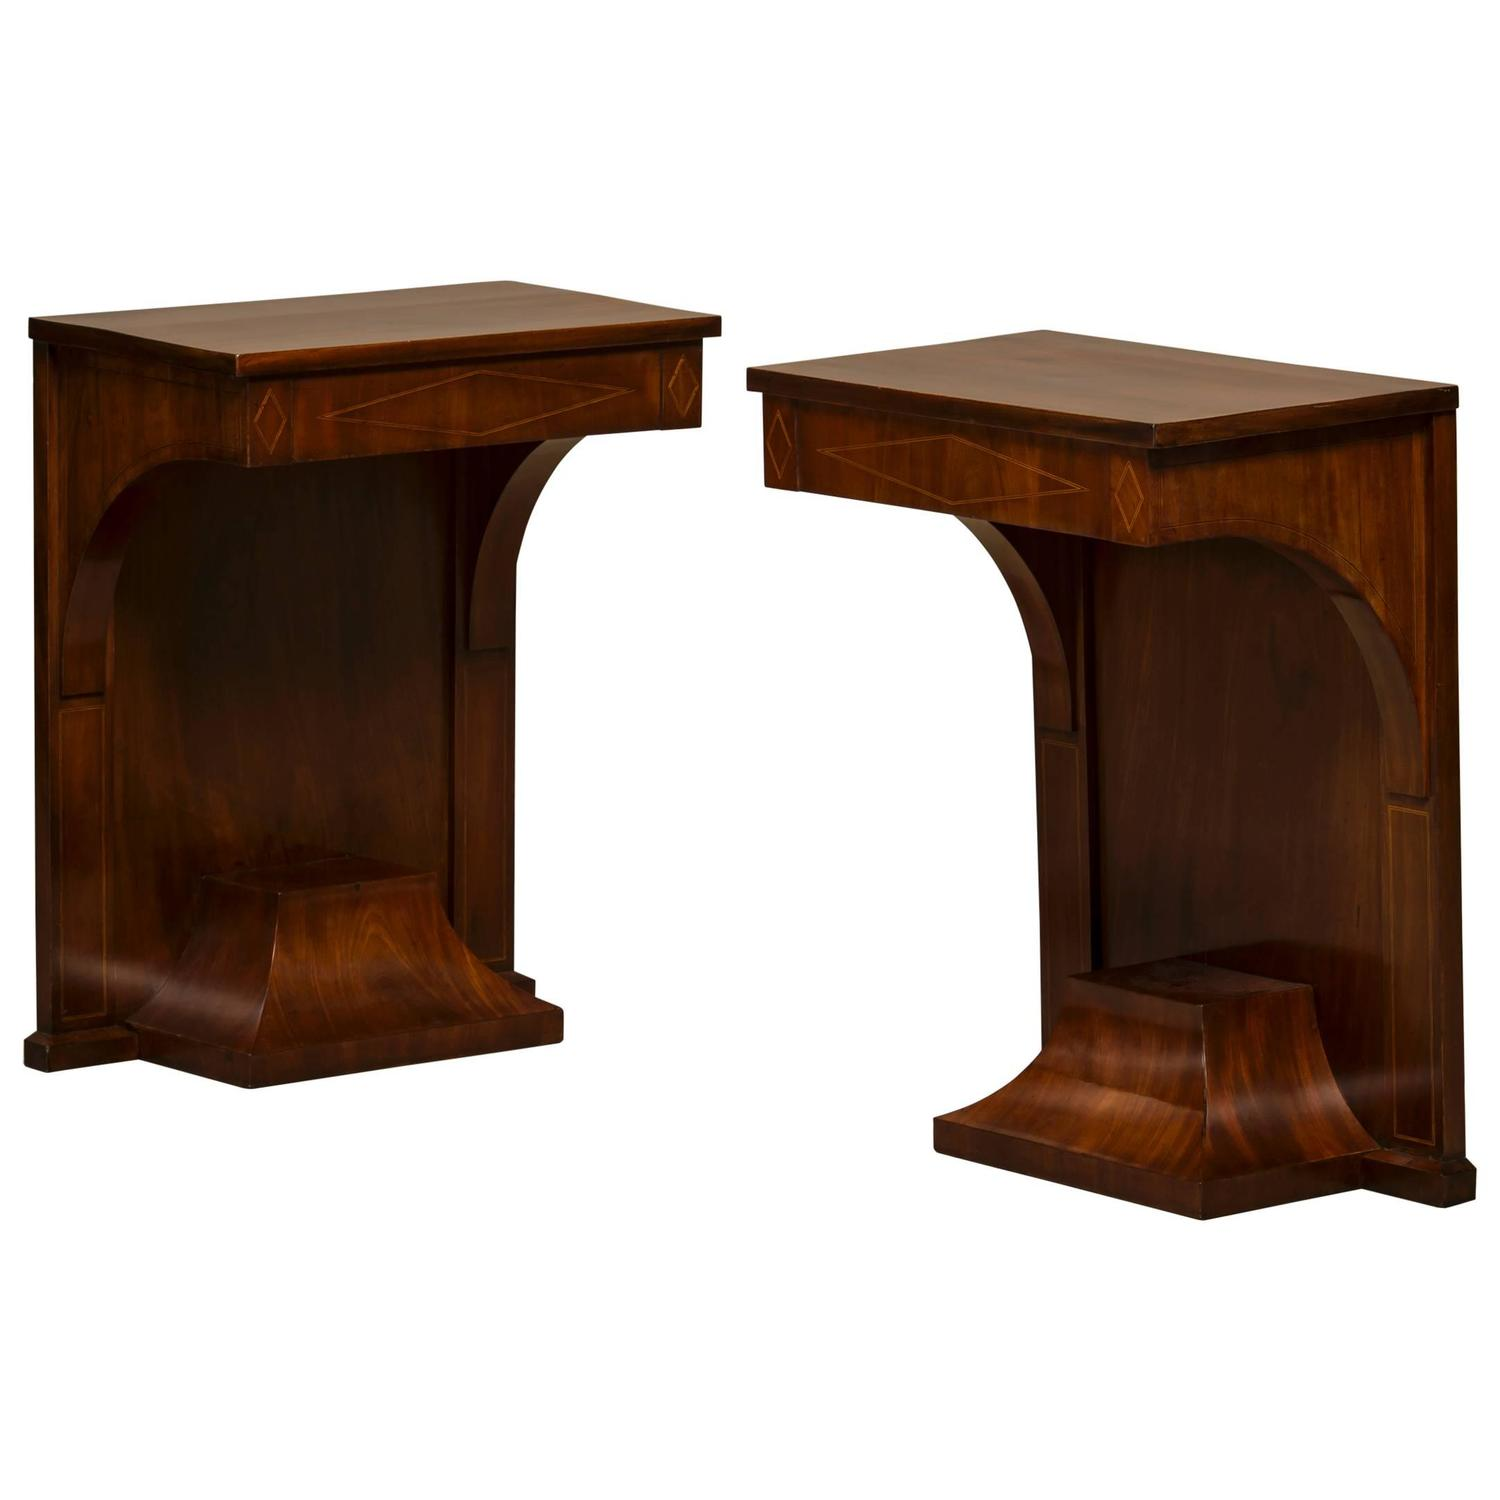 Empire Console Tables Made Of Cuban Mahogany With Inlays In Light Wood For Sale At 1stdibs